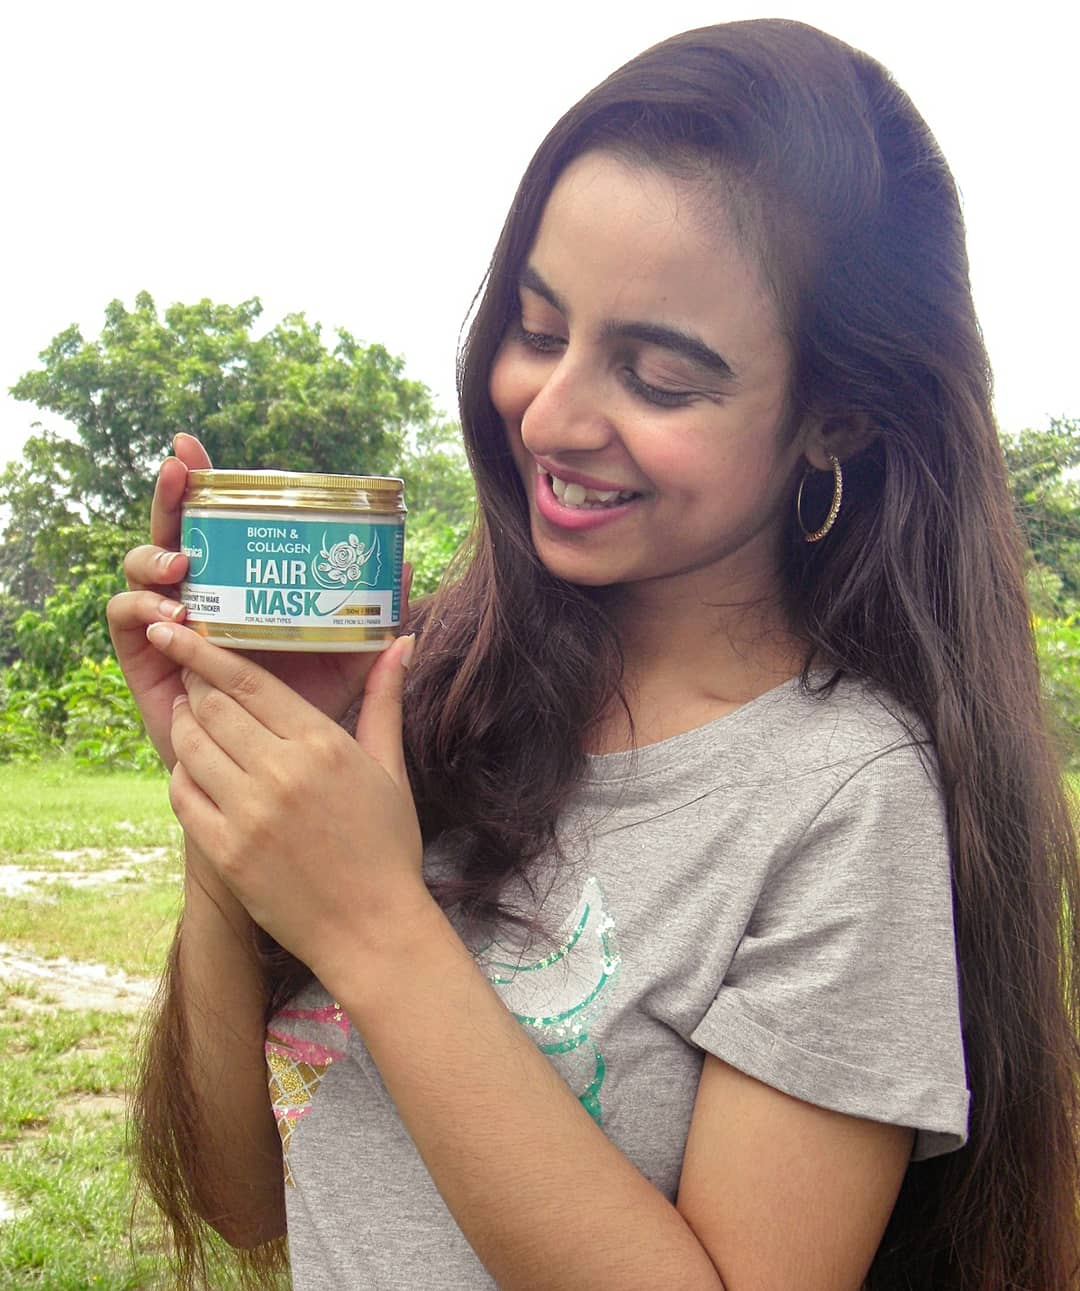 St.Botanica Biotin & Collagen Hair Mask-Best mask for frizzy hair.-By pragaticonnects